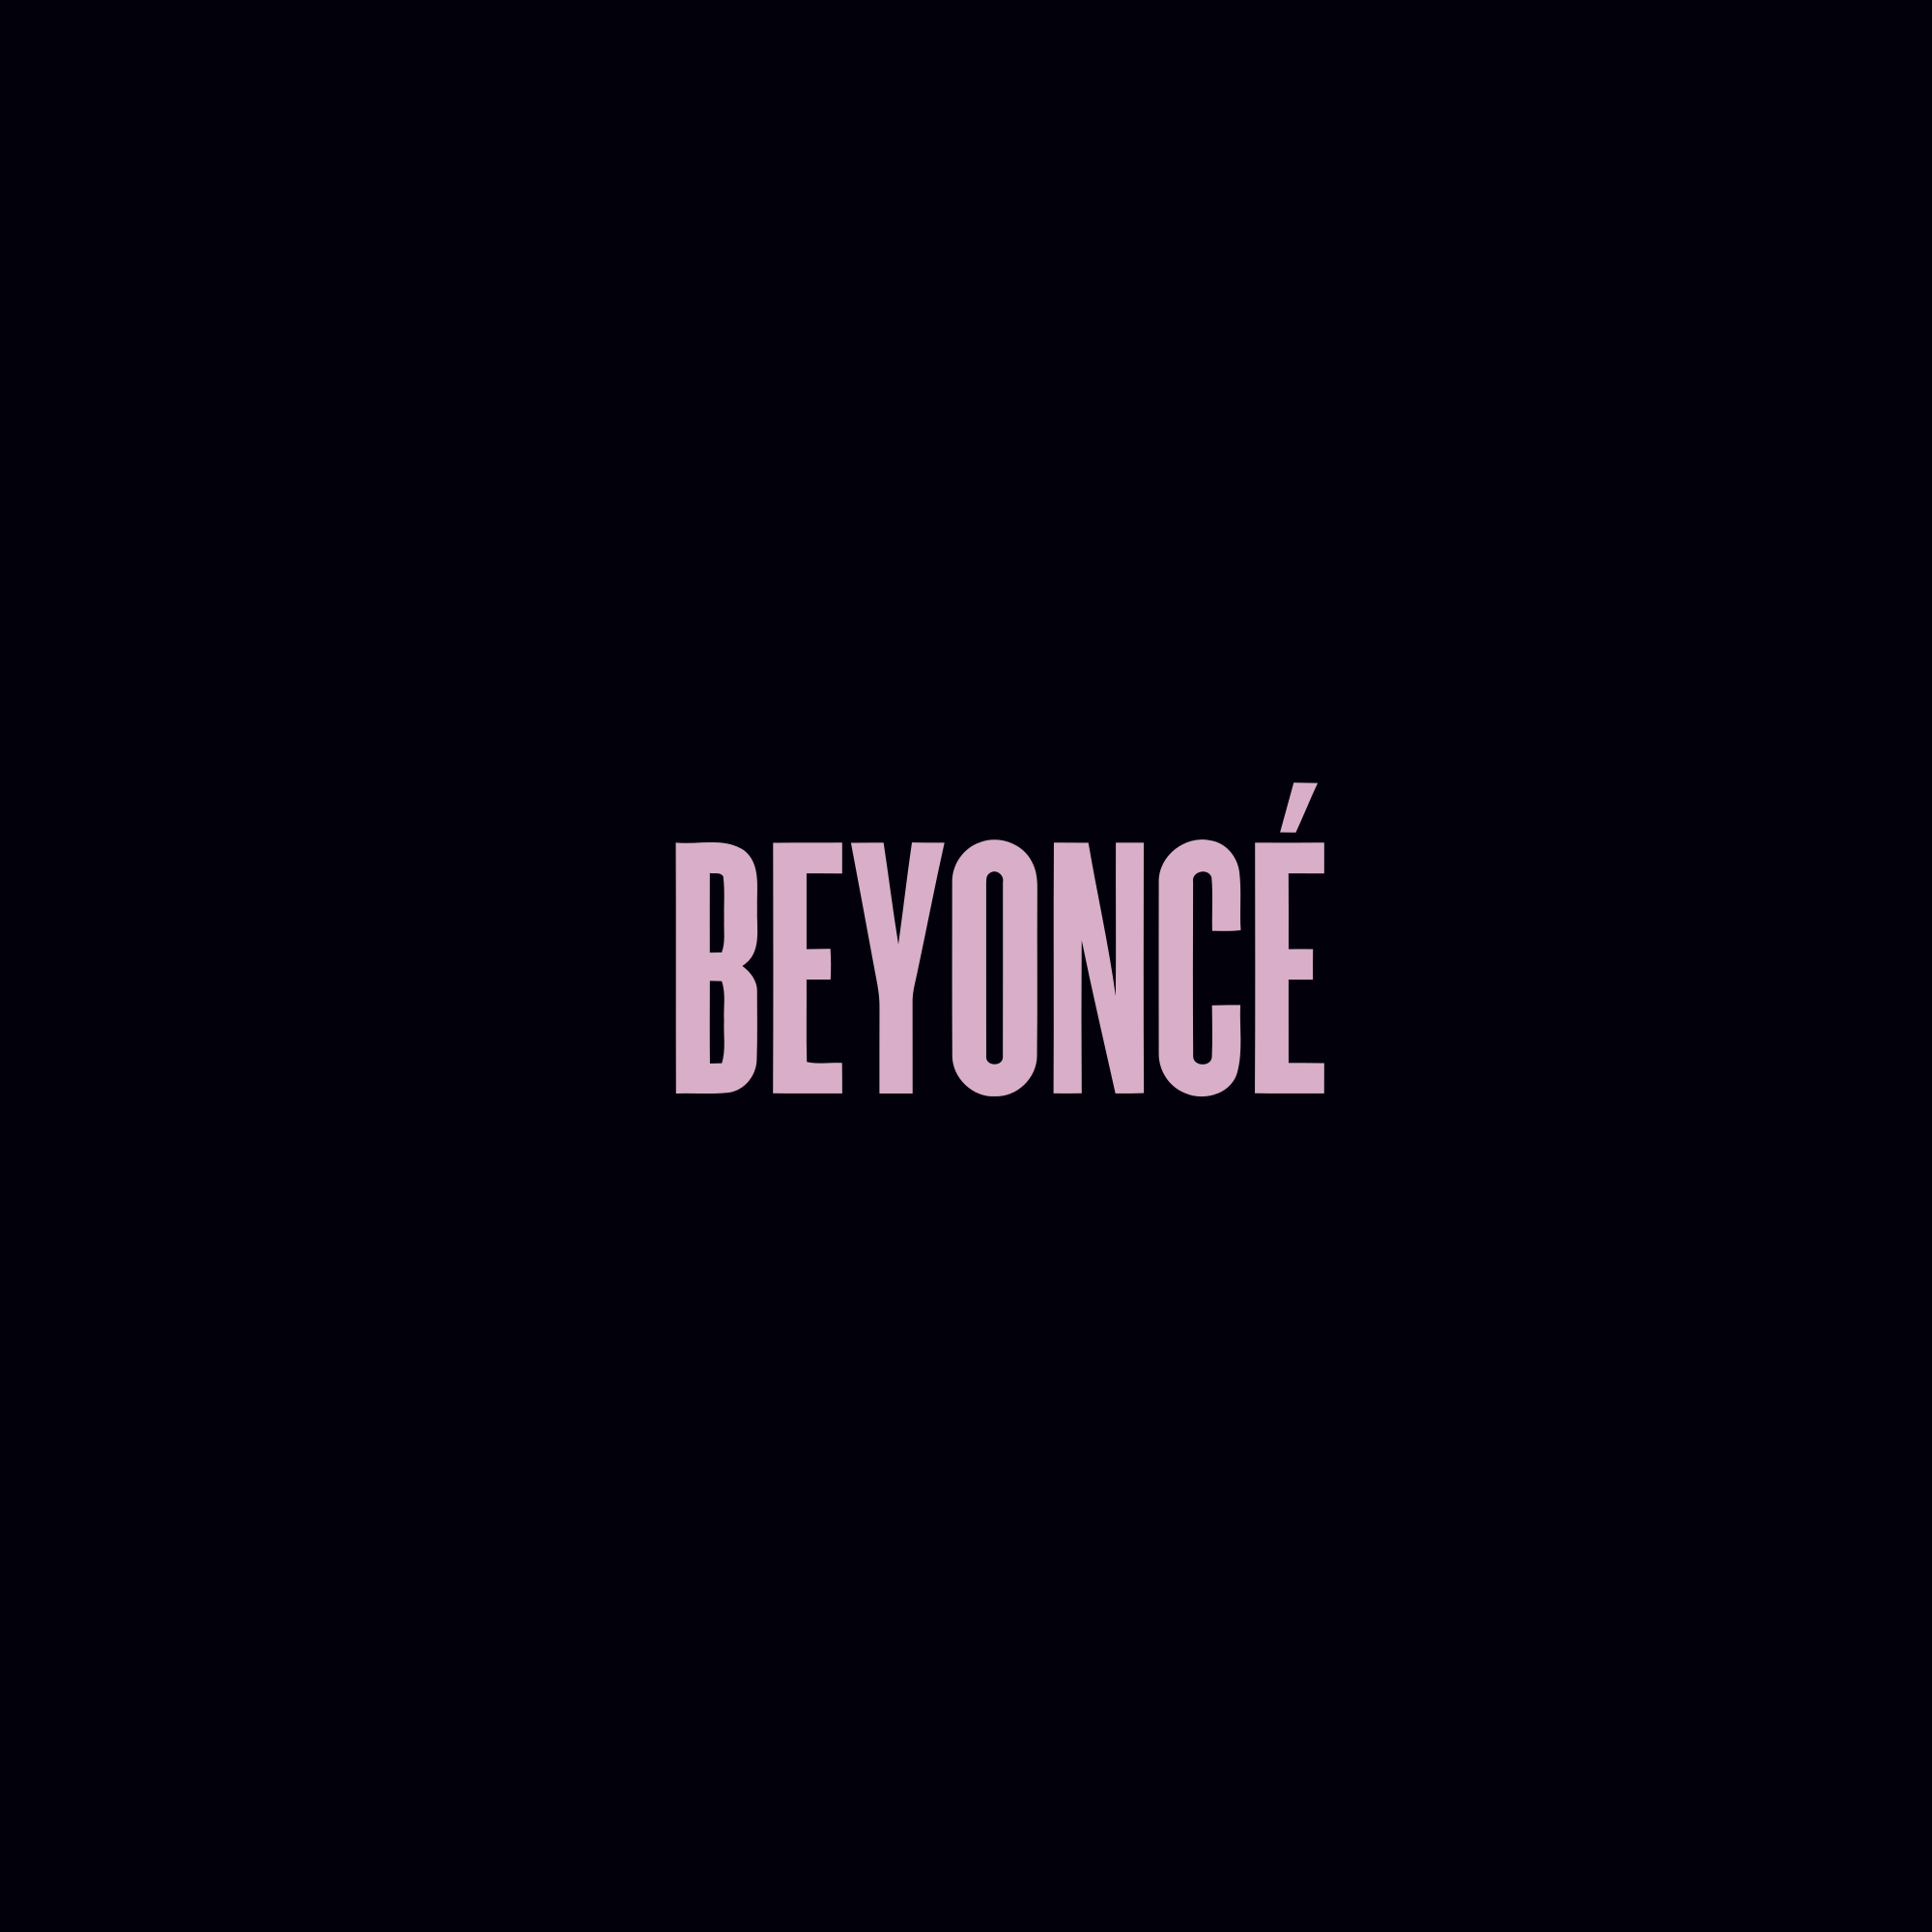 BEYONCE - BEYONCE $43 limited edition visual album double vinyl  dvd with 17 music videos 28 page booklet digital download card